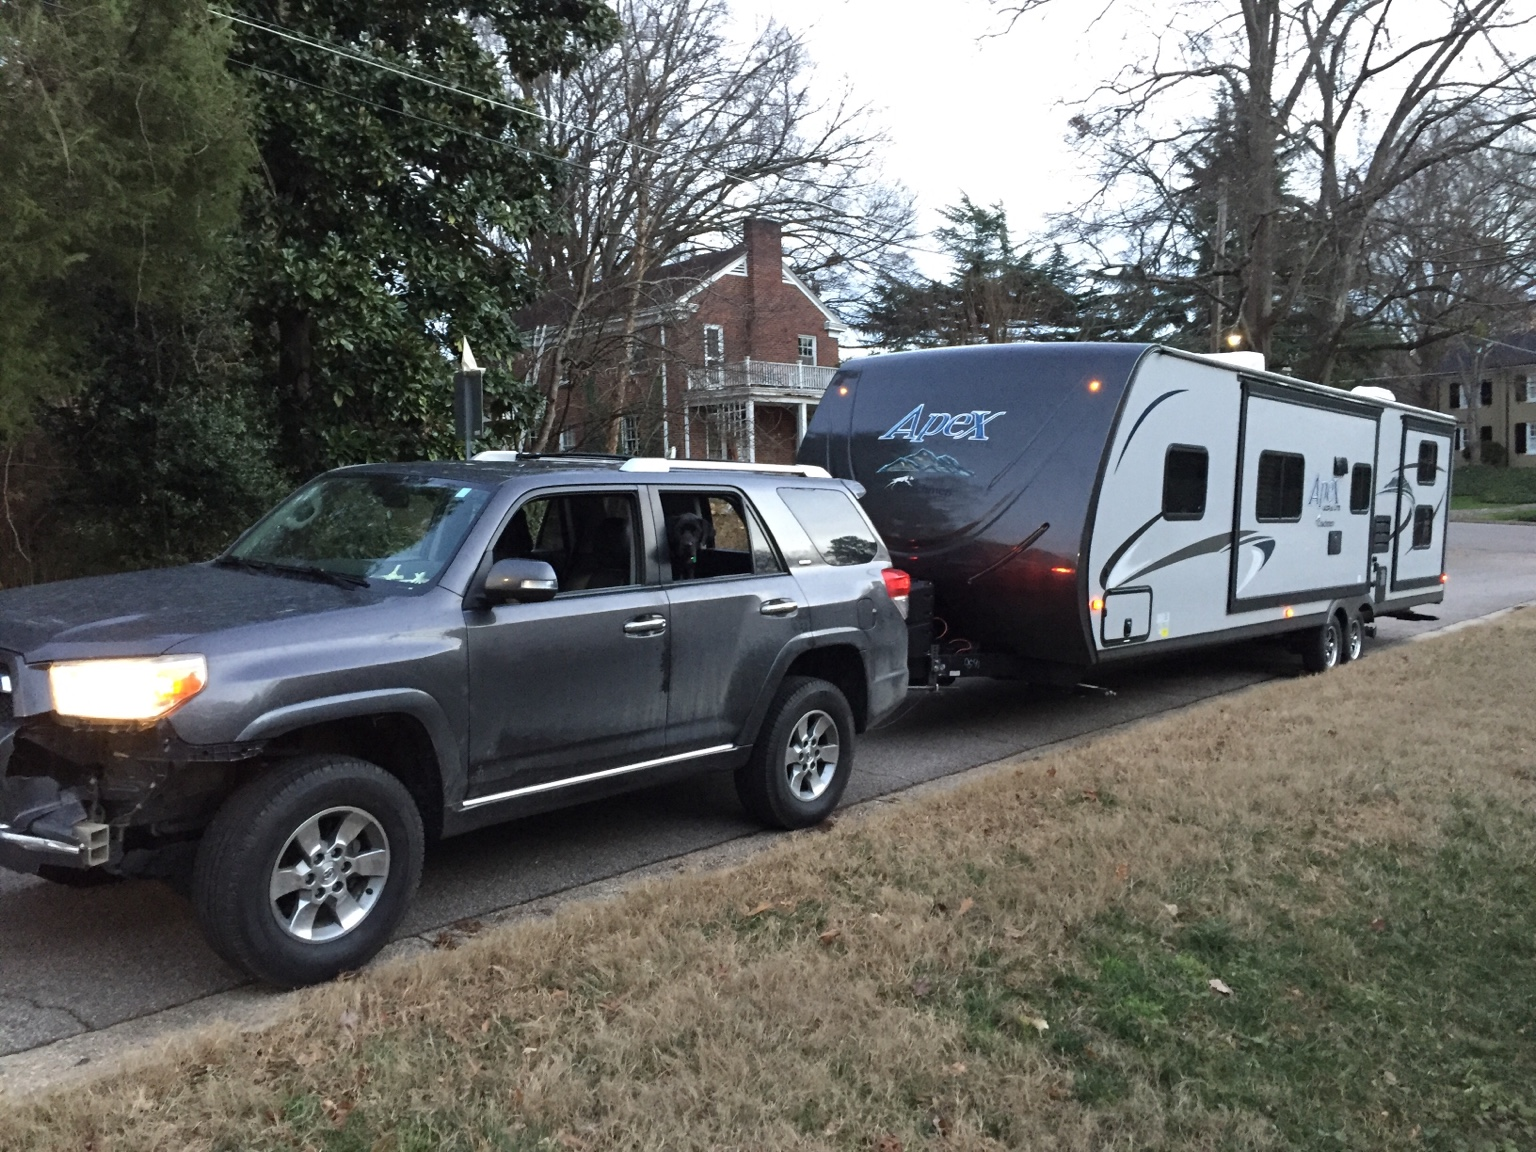 heaviest load towed with 4runner page 10 toyota 4runner forum largest 4runner forum. Black Bedroom Furniture Sets. Home Design Ideas